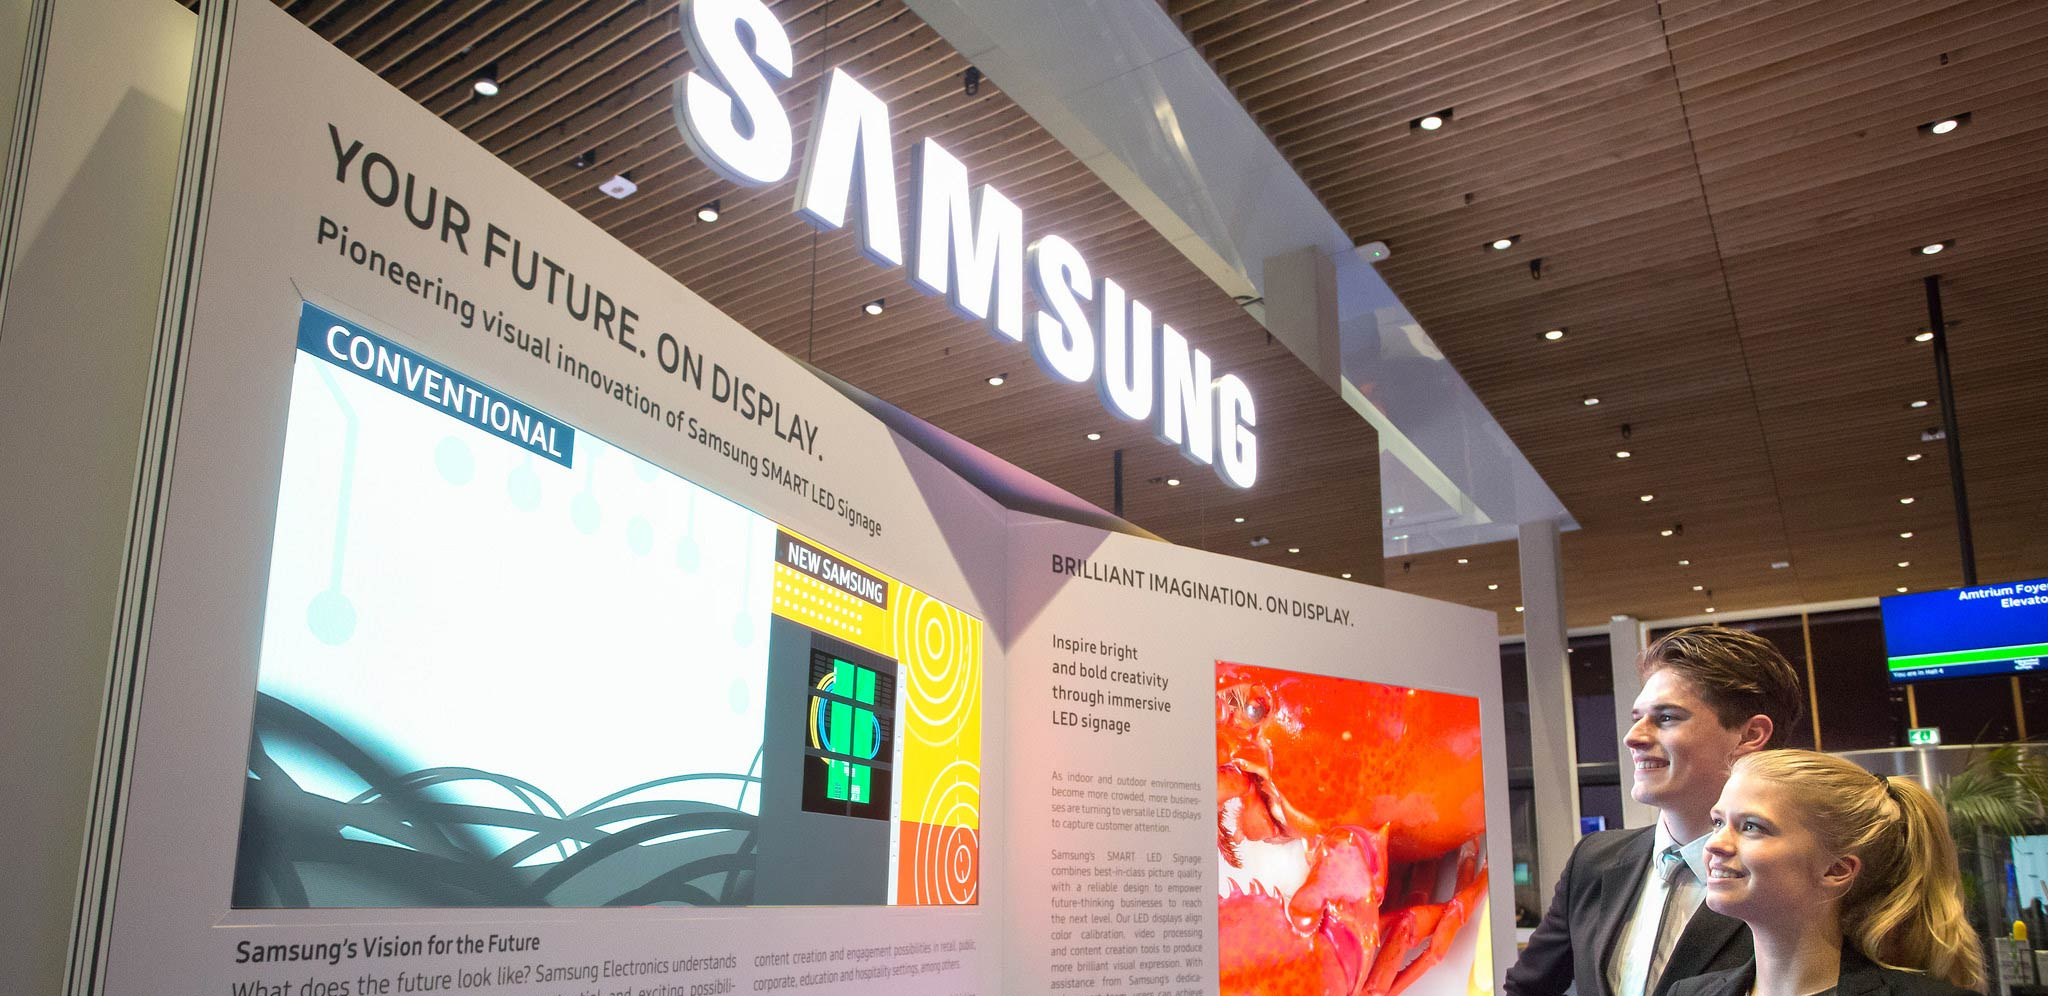 Image of Samsung store